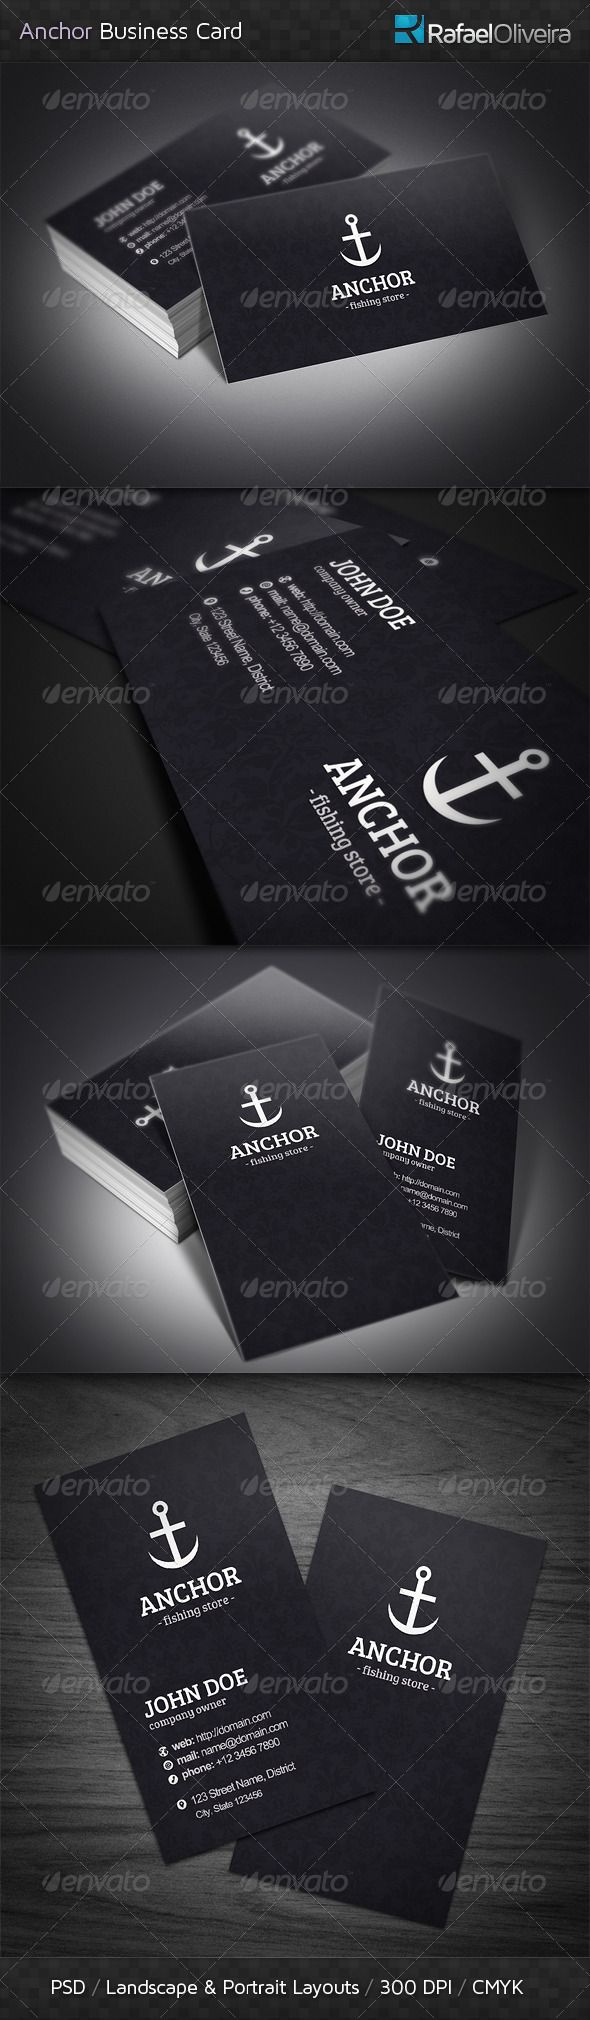 Anchor business cards business cards business and template anchor business cards industry specific business cards reheart Images